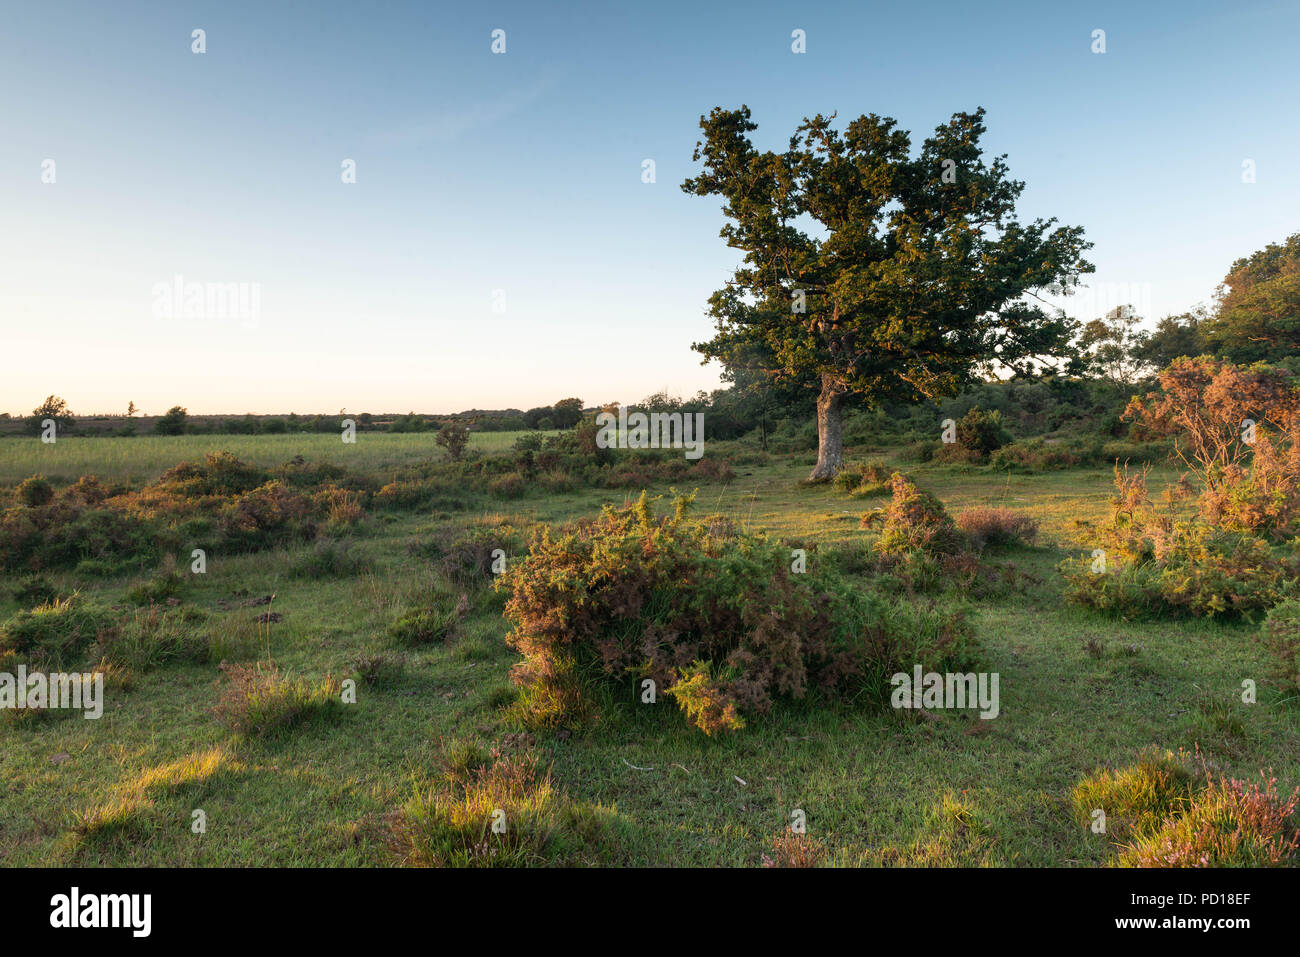 The trees and heathland of the New Forest National Park help provide a beautiful landscape from which to explore further. Taken near the village of Br Stock Photo